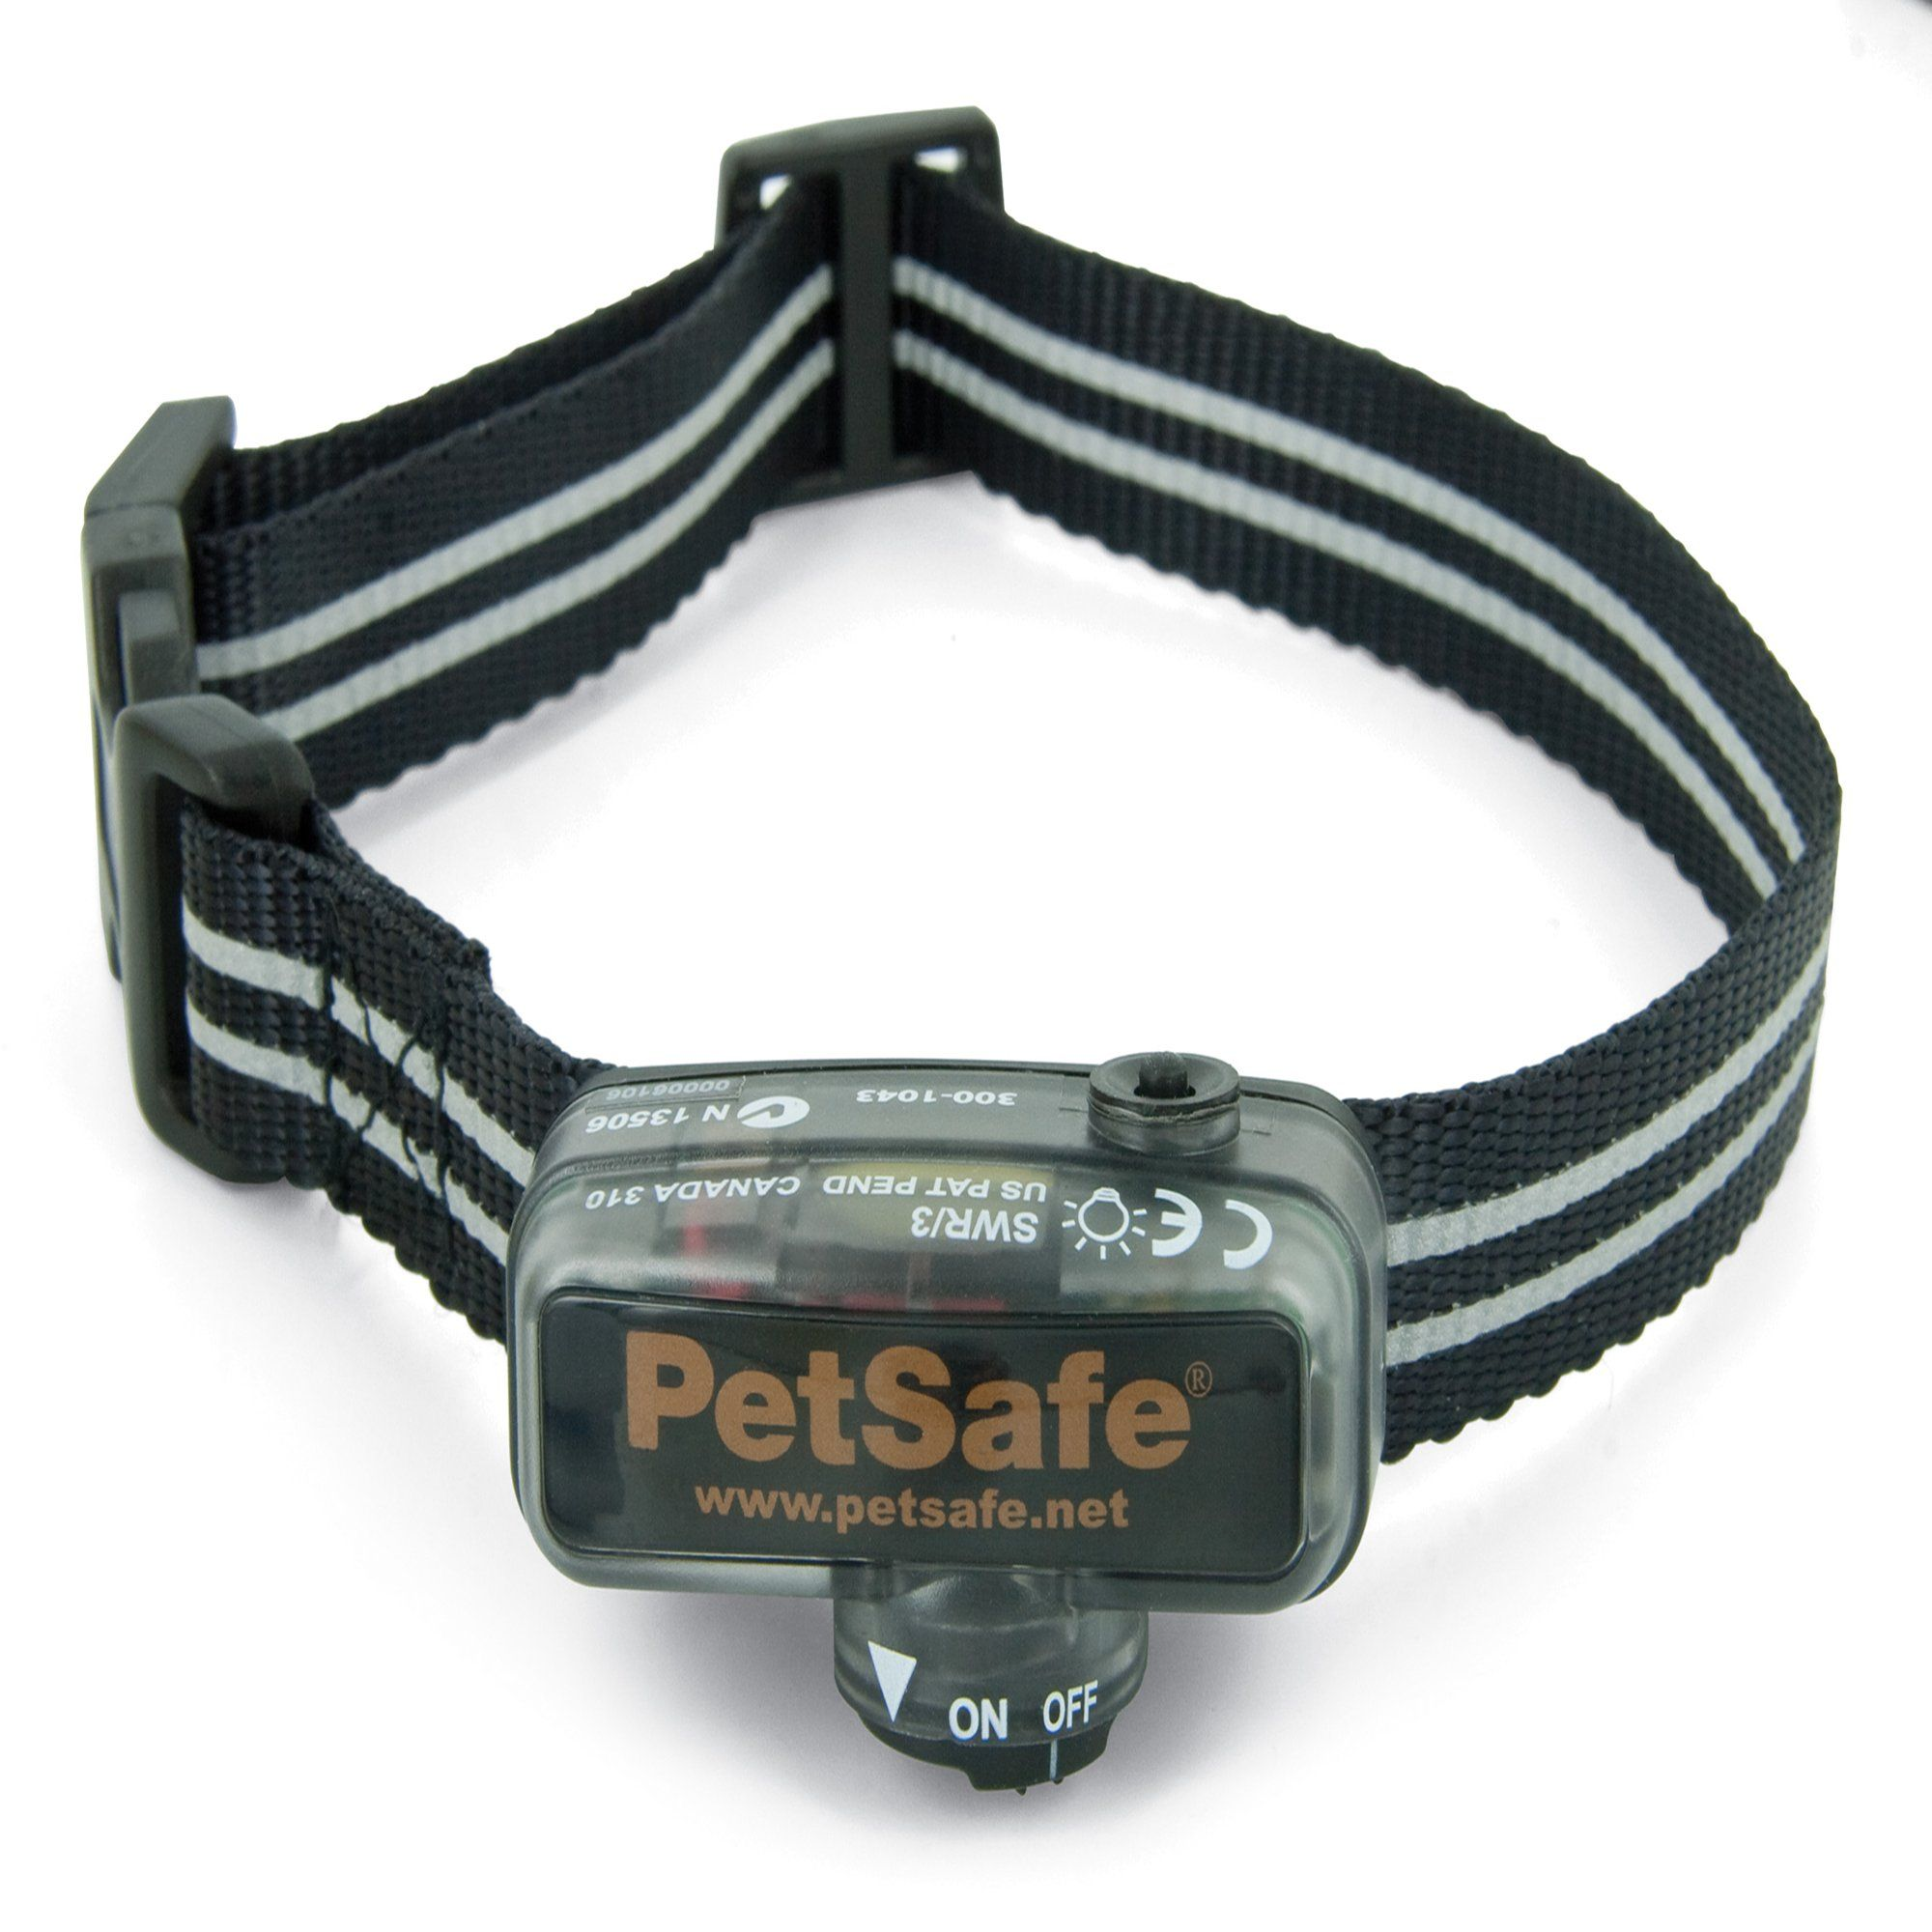 Petsafe In Ground Deluxe Little Dog Extra Receiver Dog Training Dog Training Tips Little Dogs